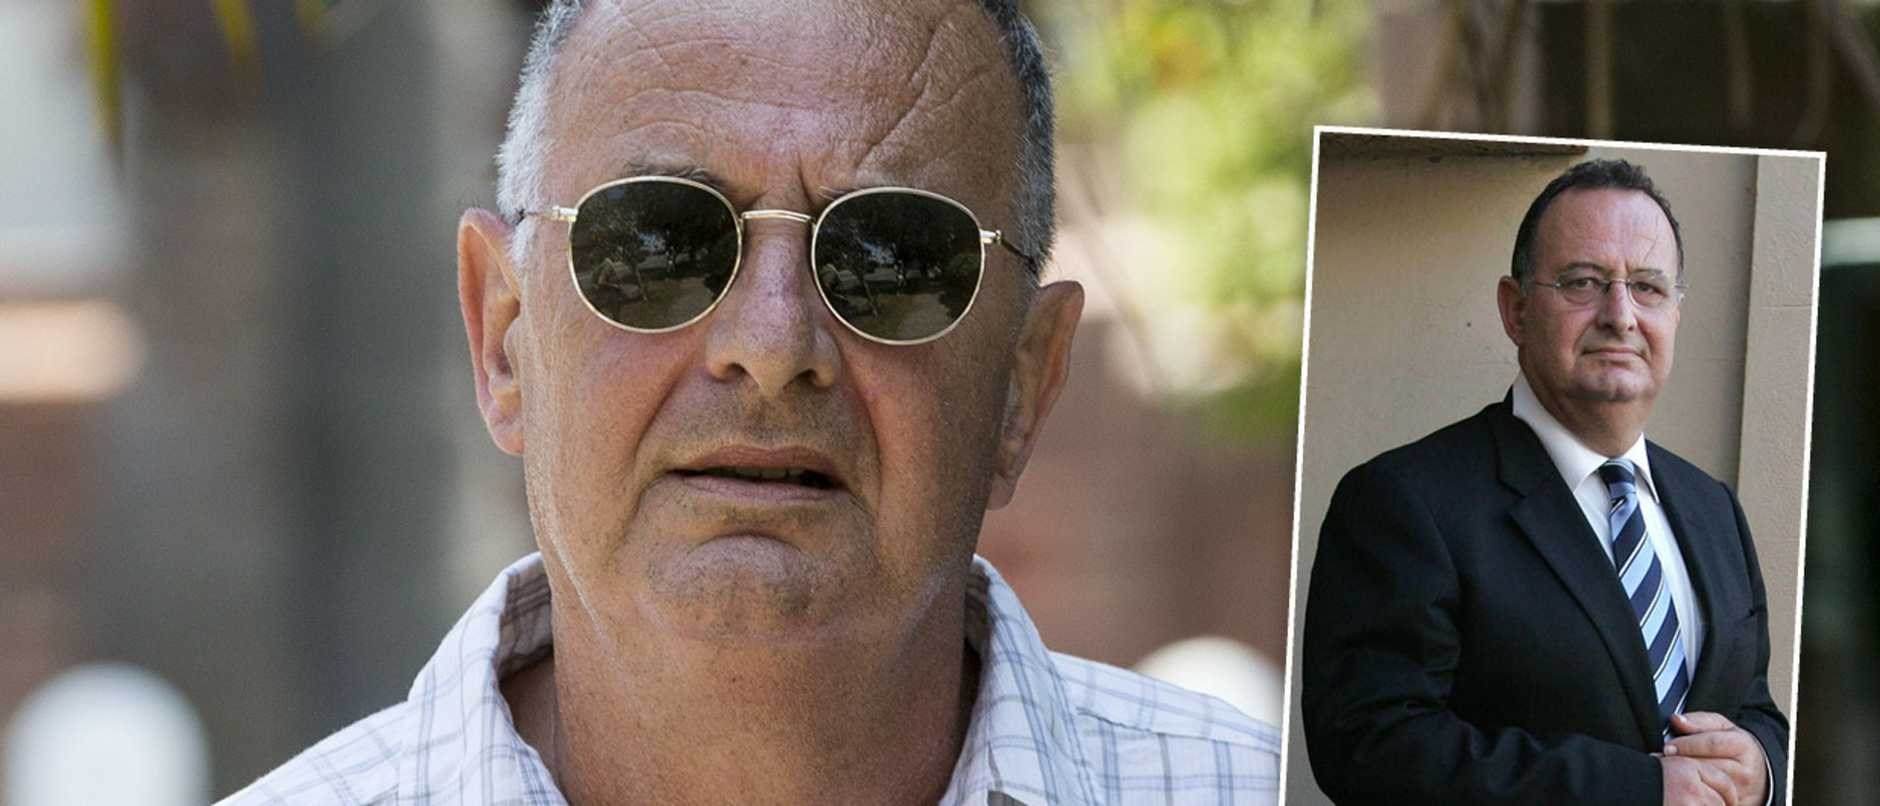 Police allege a victim of paedophile Milton Orkopoulos was asked to sign away a complaint against his abuser while under the eye of another Labor MP.